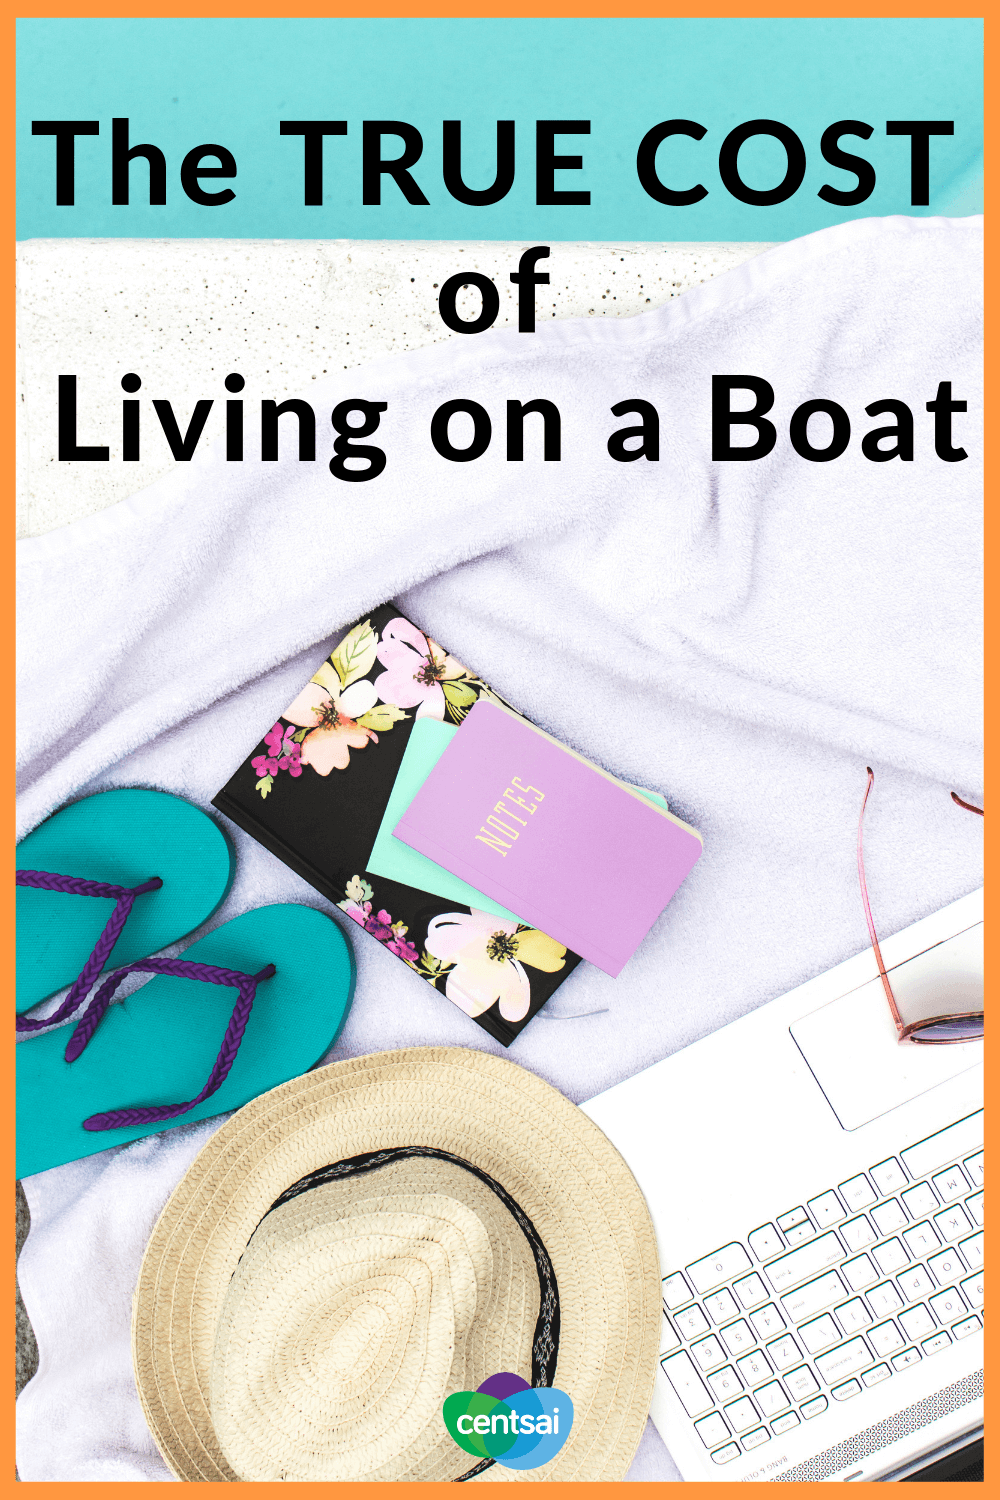 The True Cost of Living on a Boat. Have you ever dreamed of life on the high seas? It might not be as grand as you think. Check out the REAL COST of living on a boat and you may get surprised! #costofliving #livingonaboat